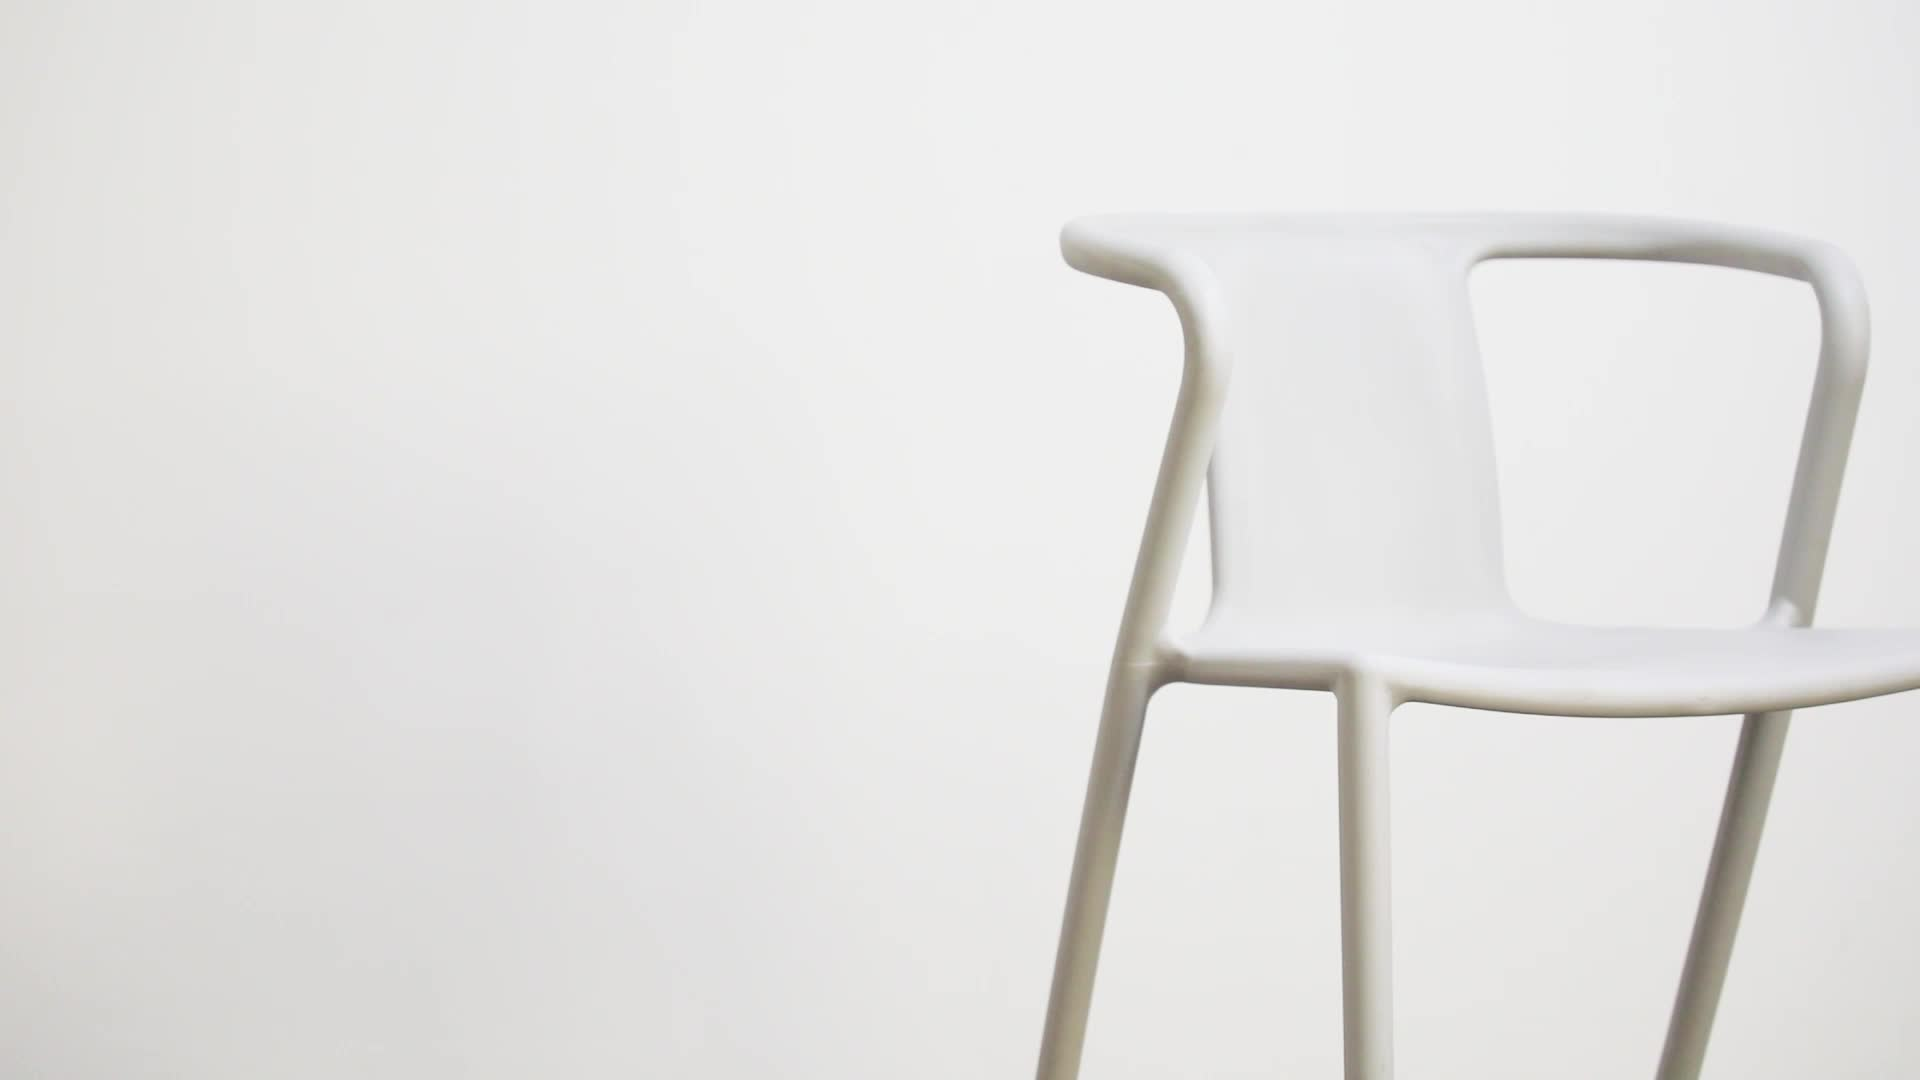 Sillas De Plastico Ikea Stackable Sillas De Plastico Tantra Arm Chair Buy Sillas